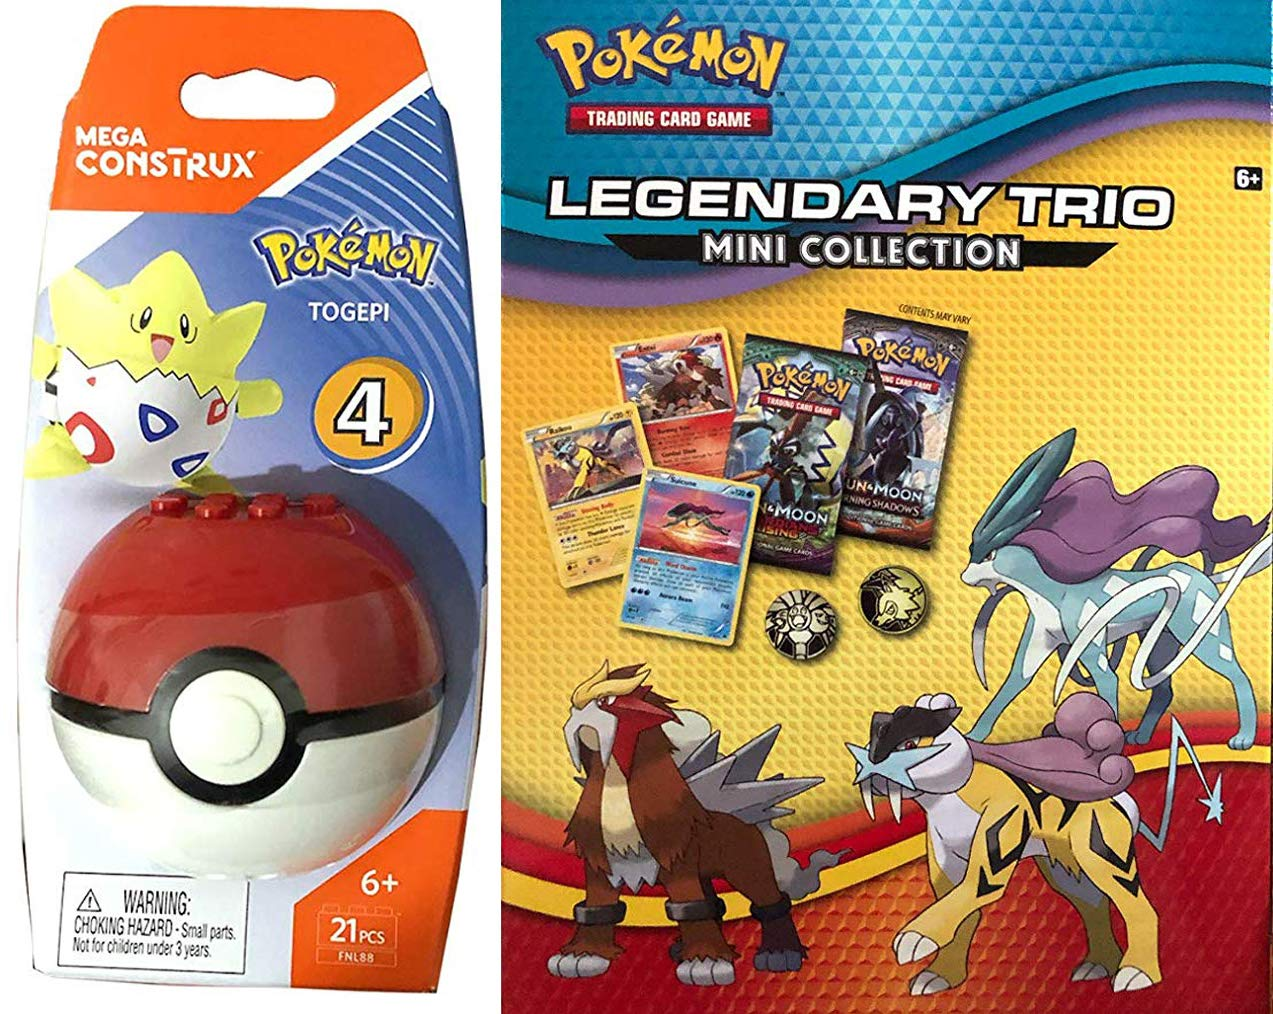 Mega Construx Trading Pokeball Togepi Trouble Pokemon Building Set Figure Bundled with Legendary Trio Mini Collection Card Game 2 Items